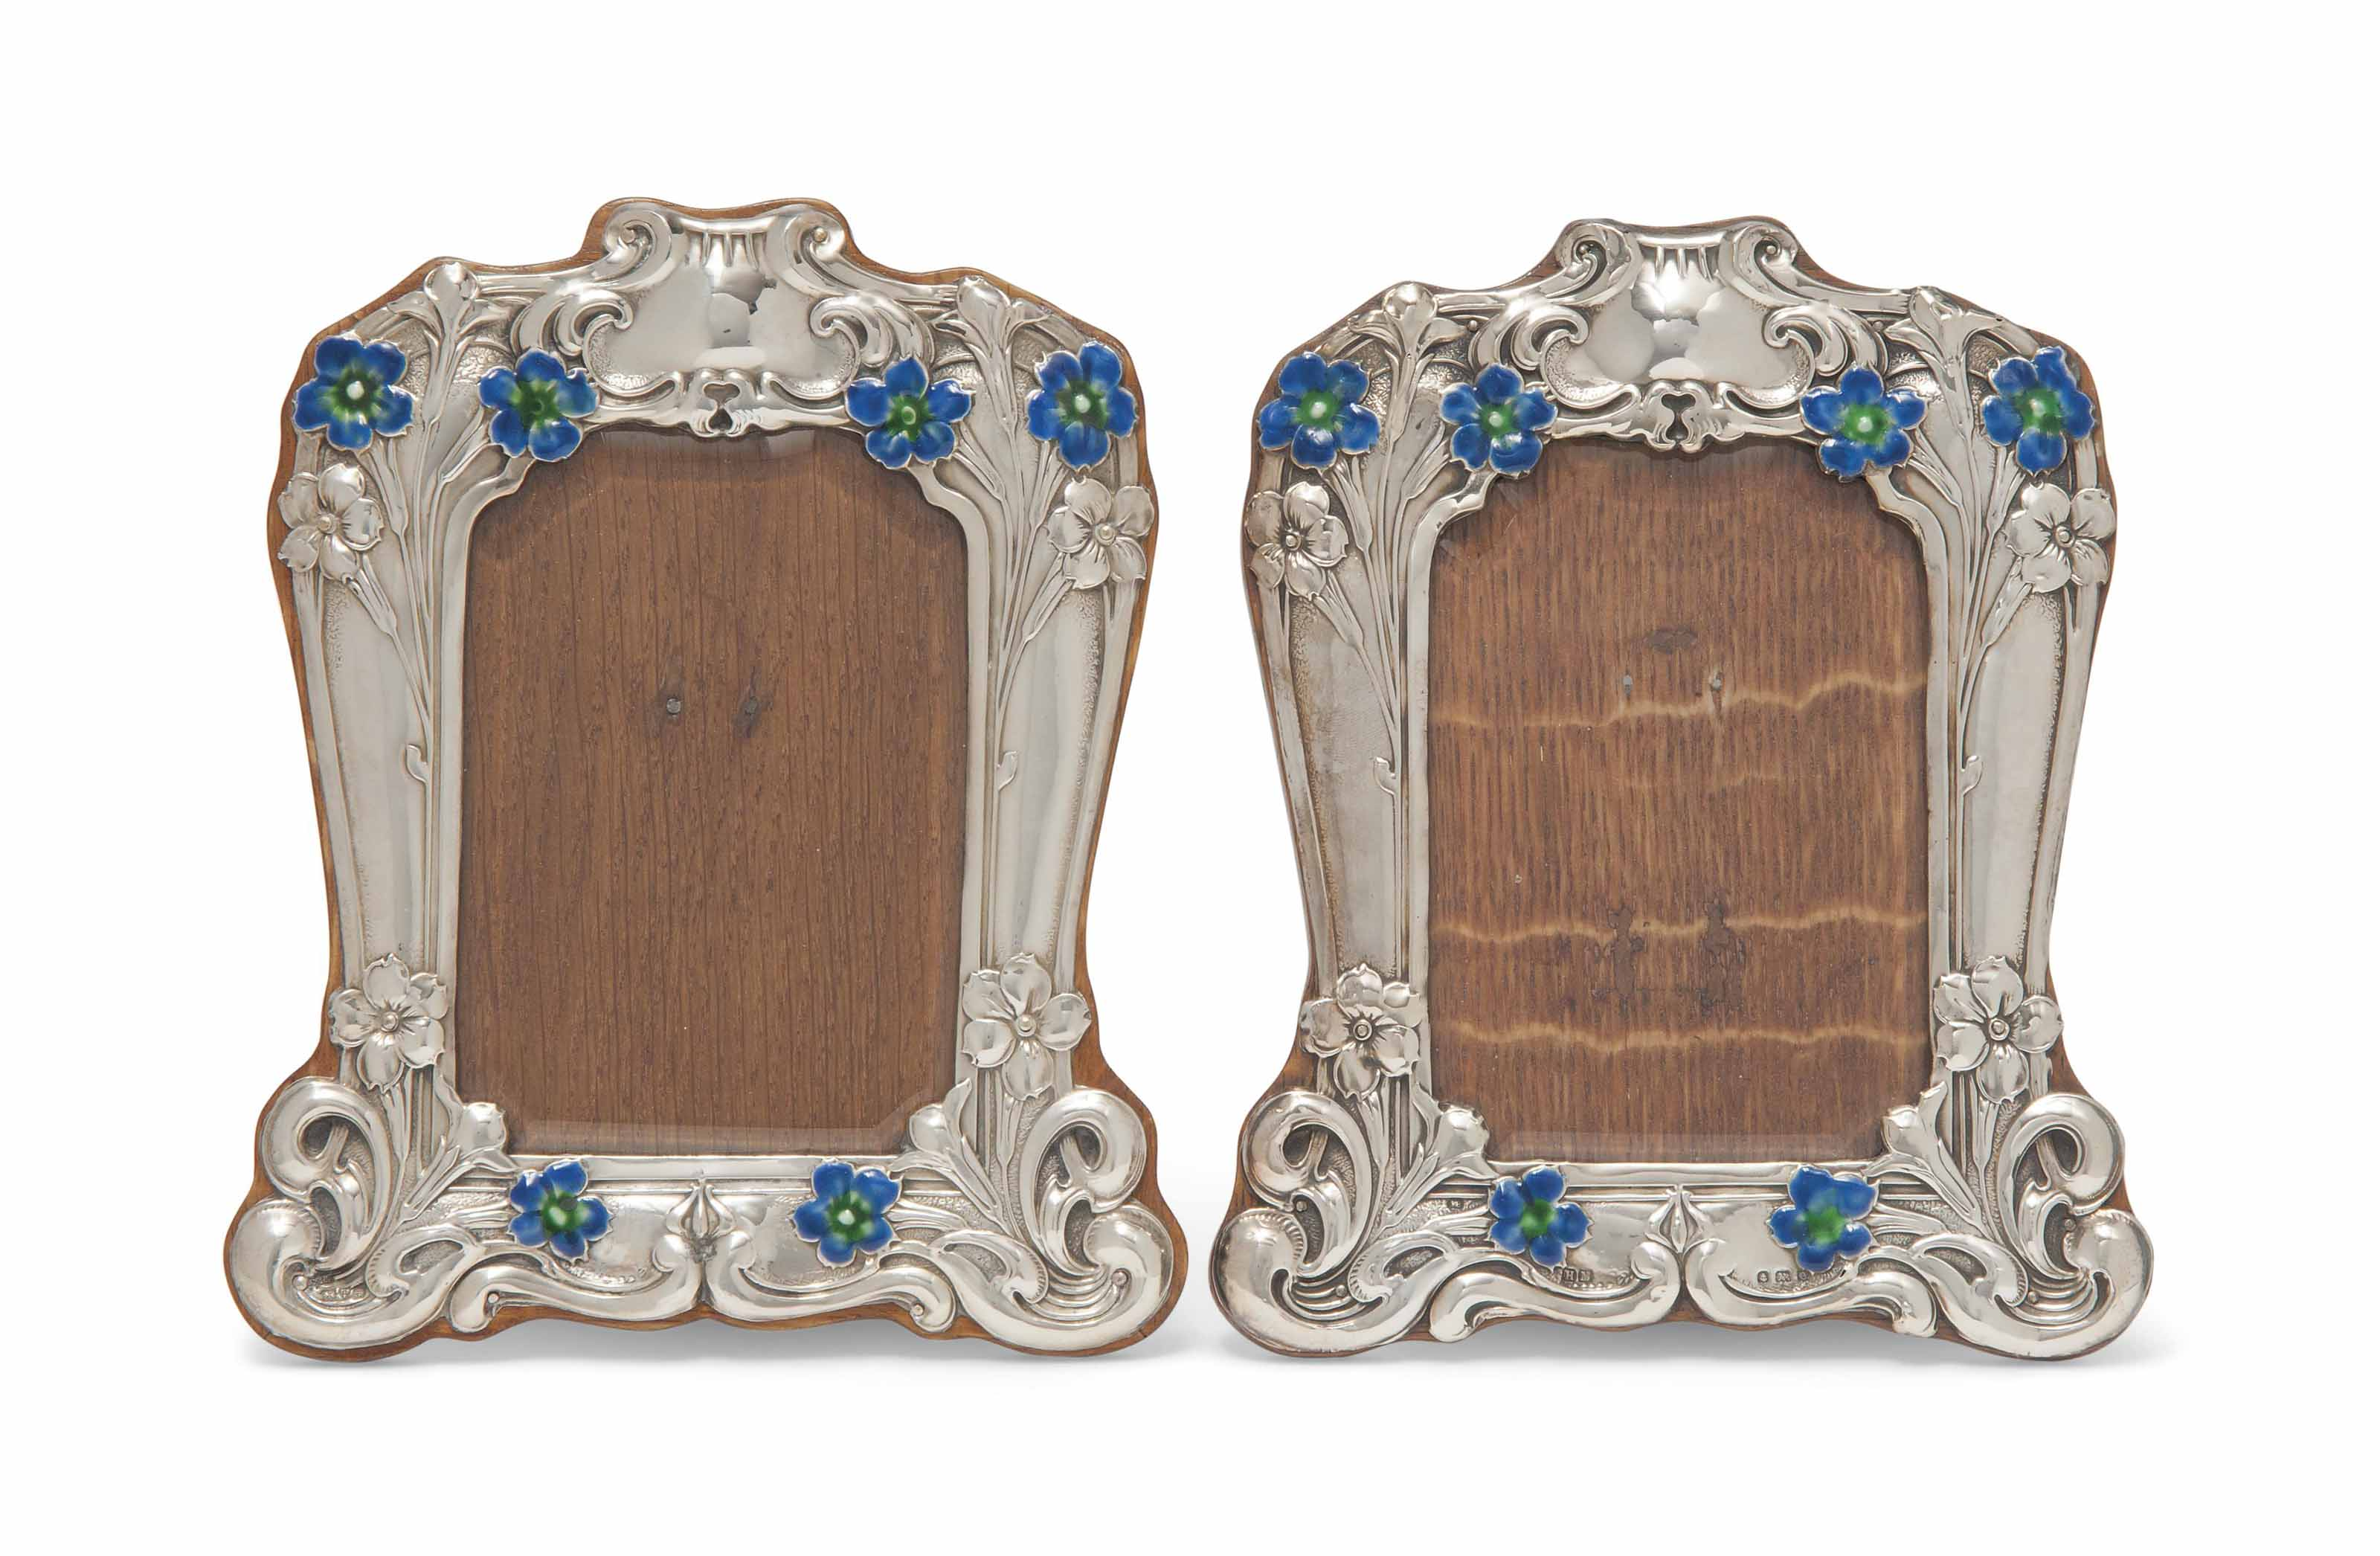 A MATCHED PAIR OF EDWARDIAN SILVER AND ENAMEL PHOTOGRAPH FRAMES